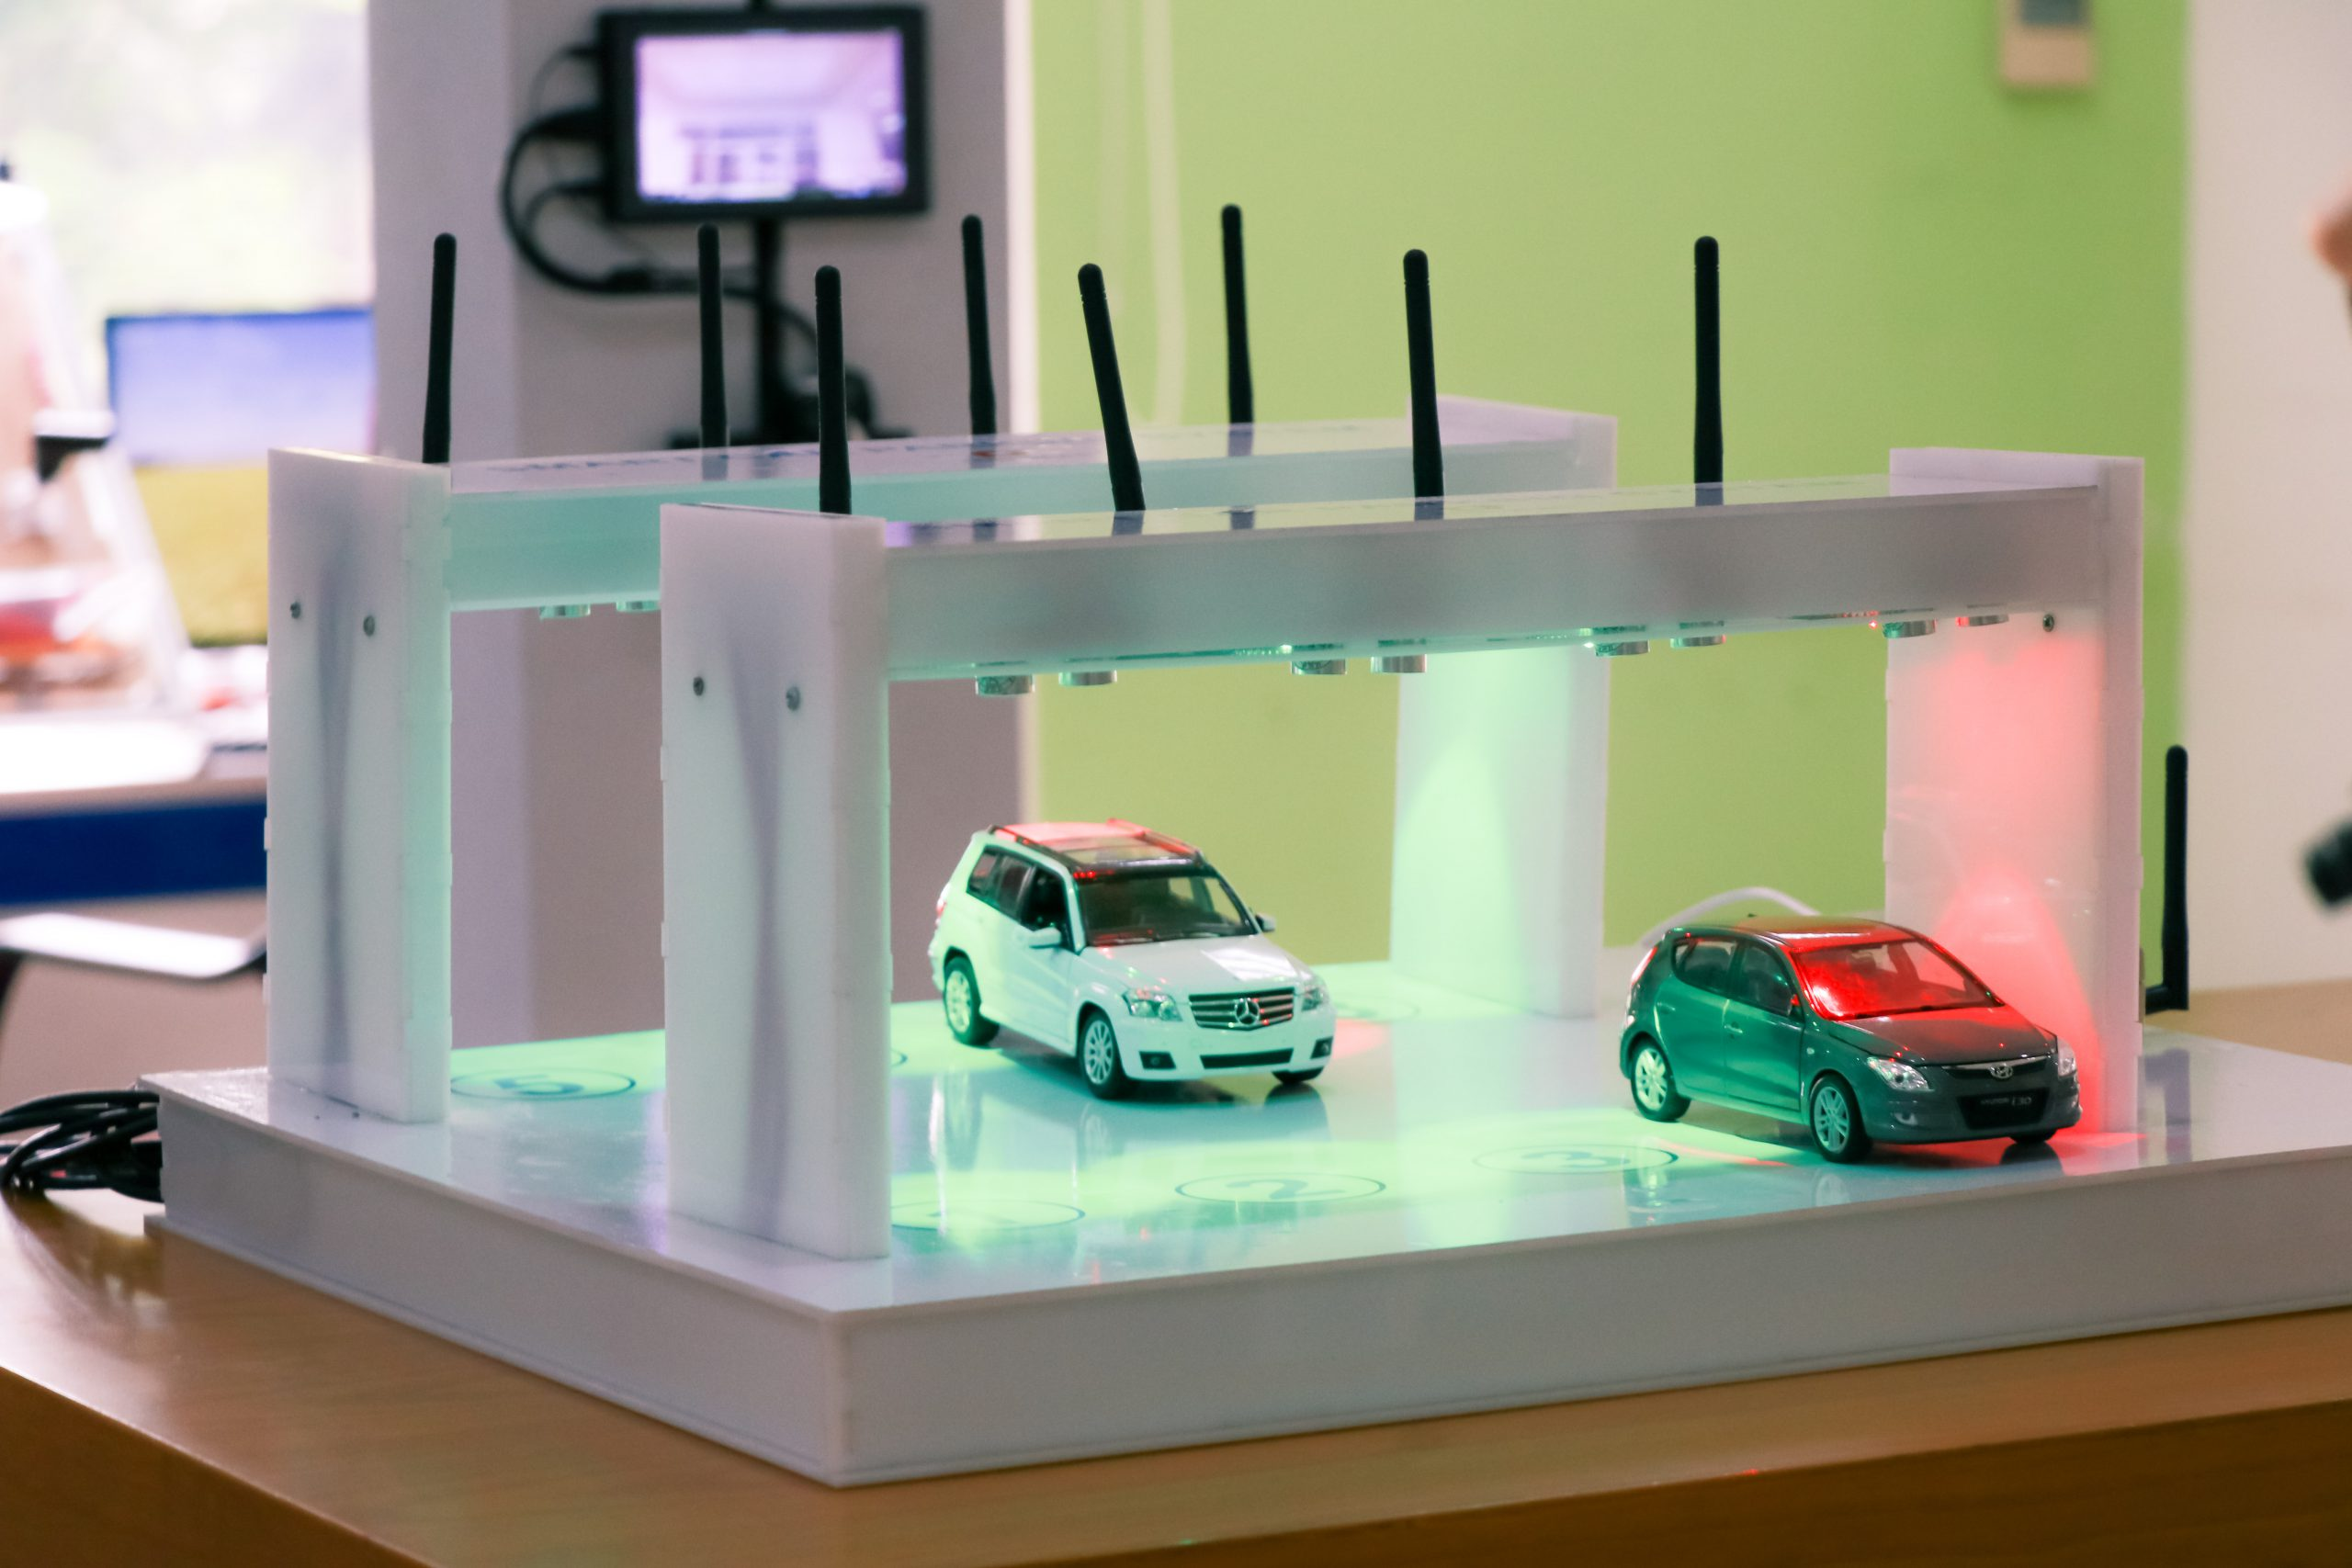 Smart Car Parking System Model with 2 model cars